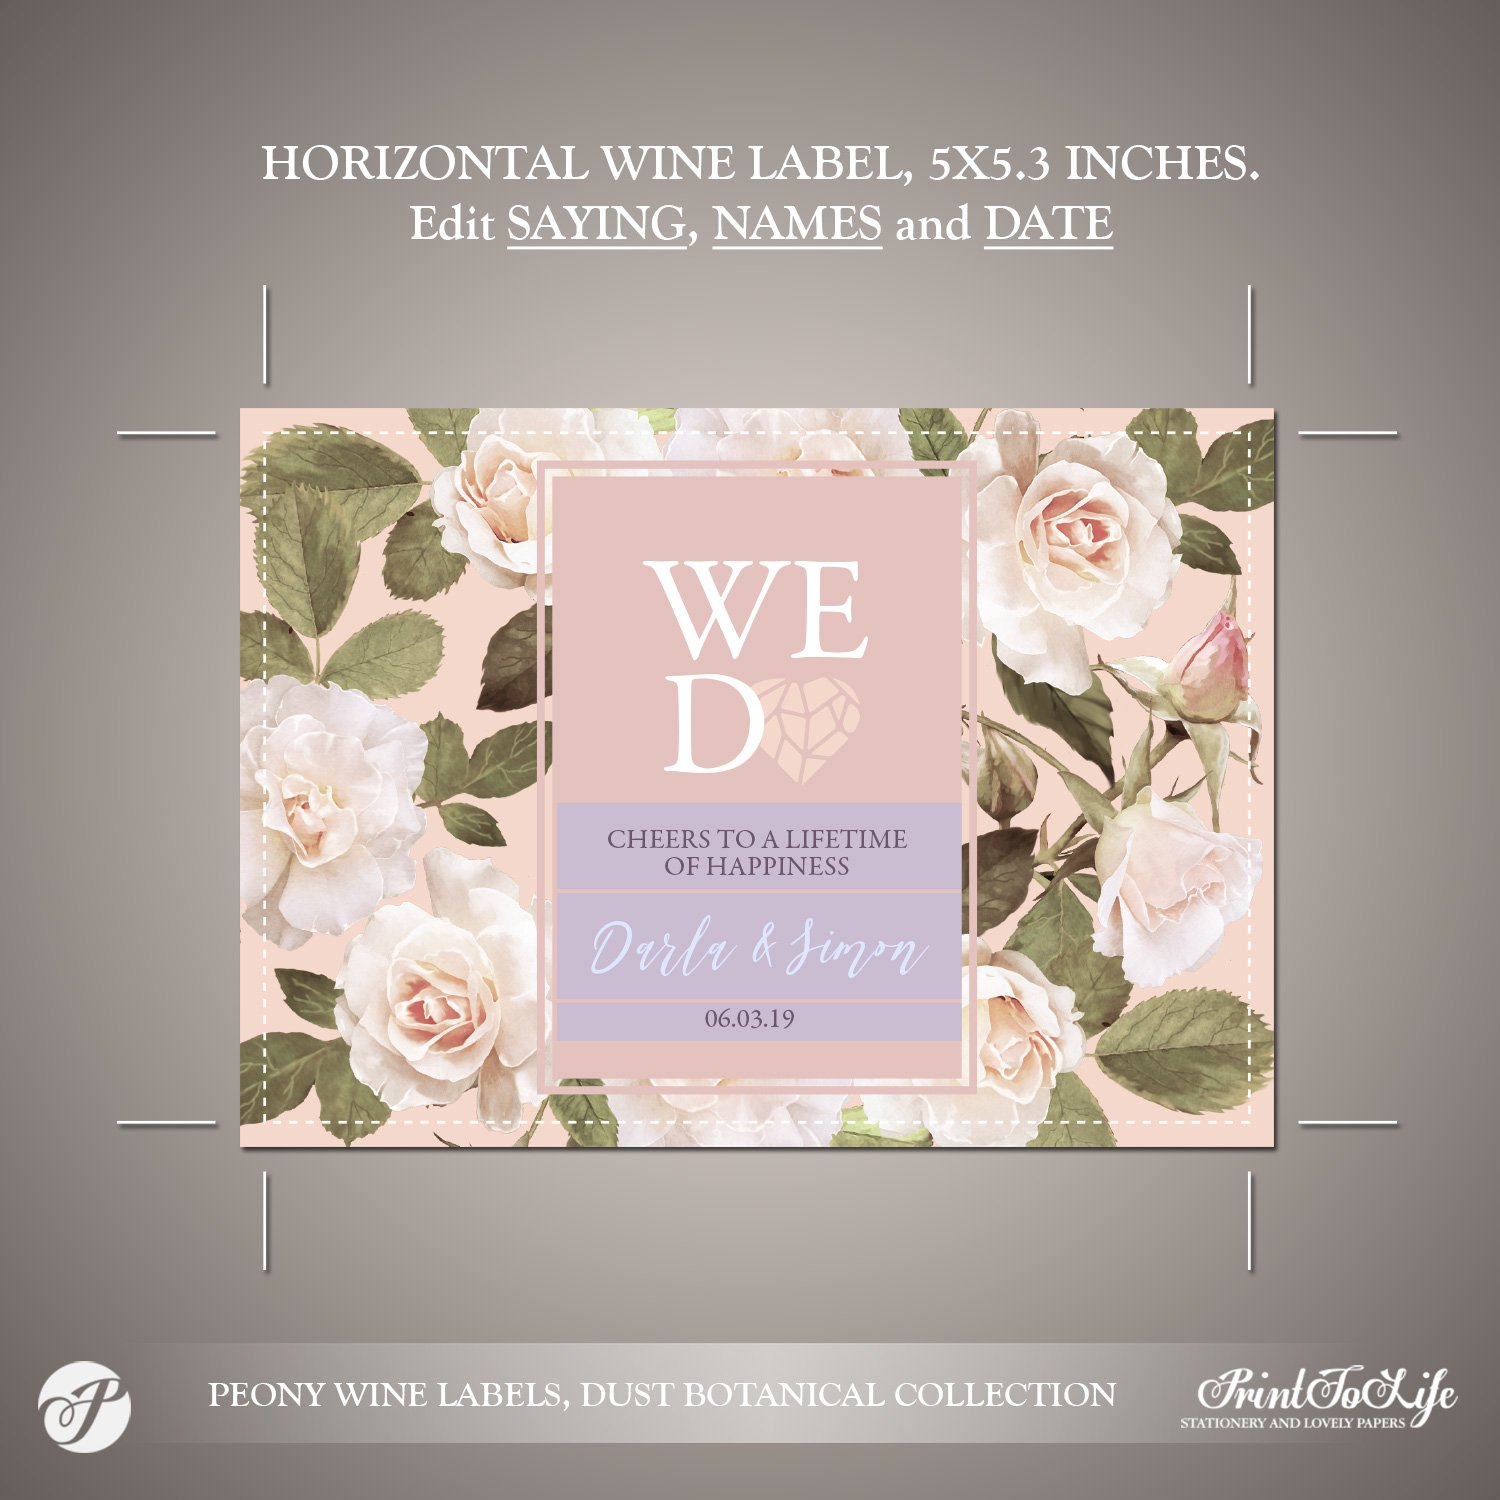 wine bottle label template by Printolife